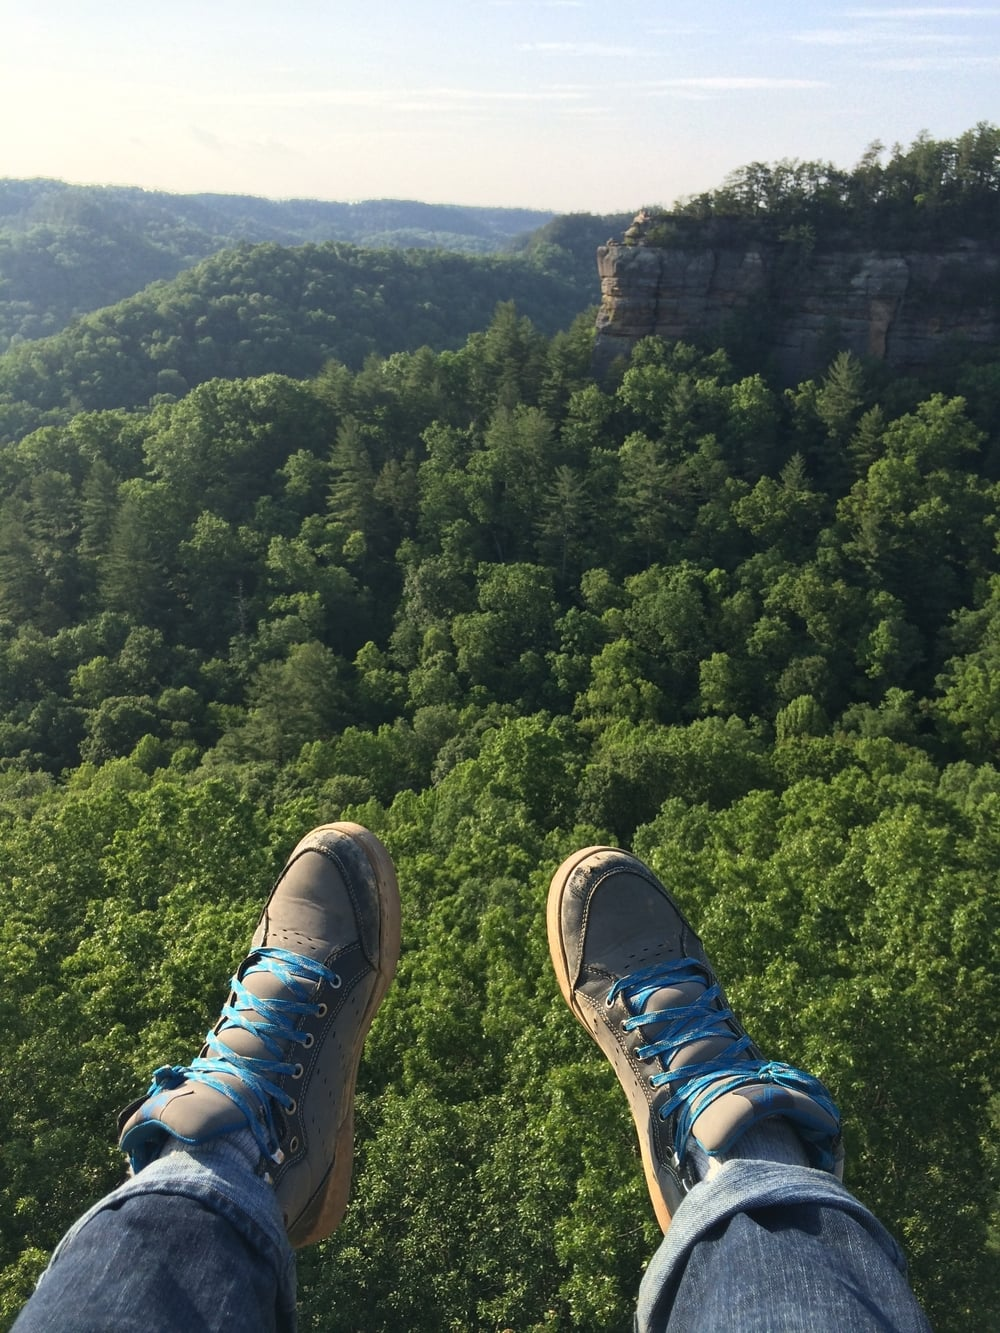 Sitting on Half Moon Rock looking out at Chimney Top Rock in the Red River Gorge.